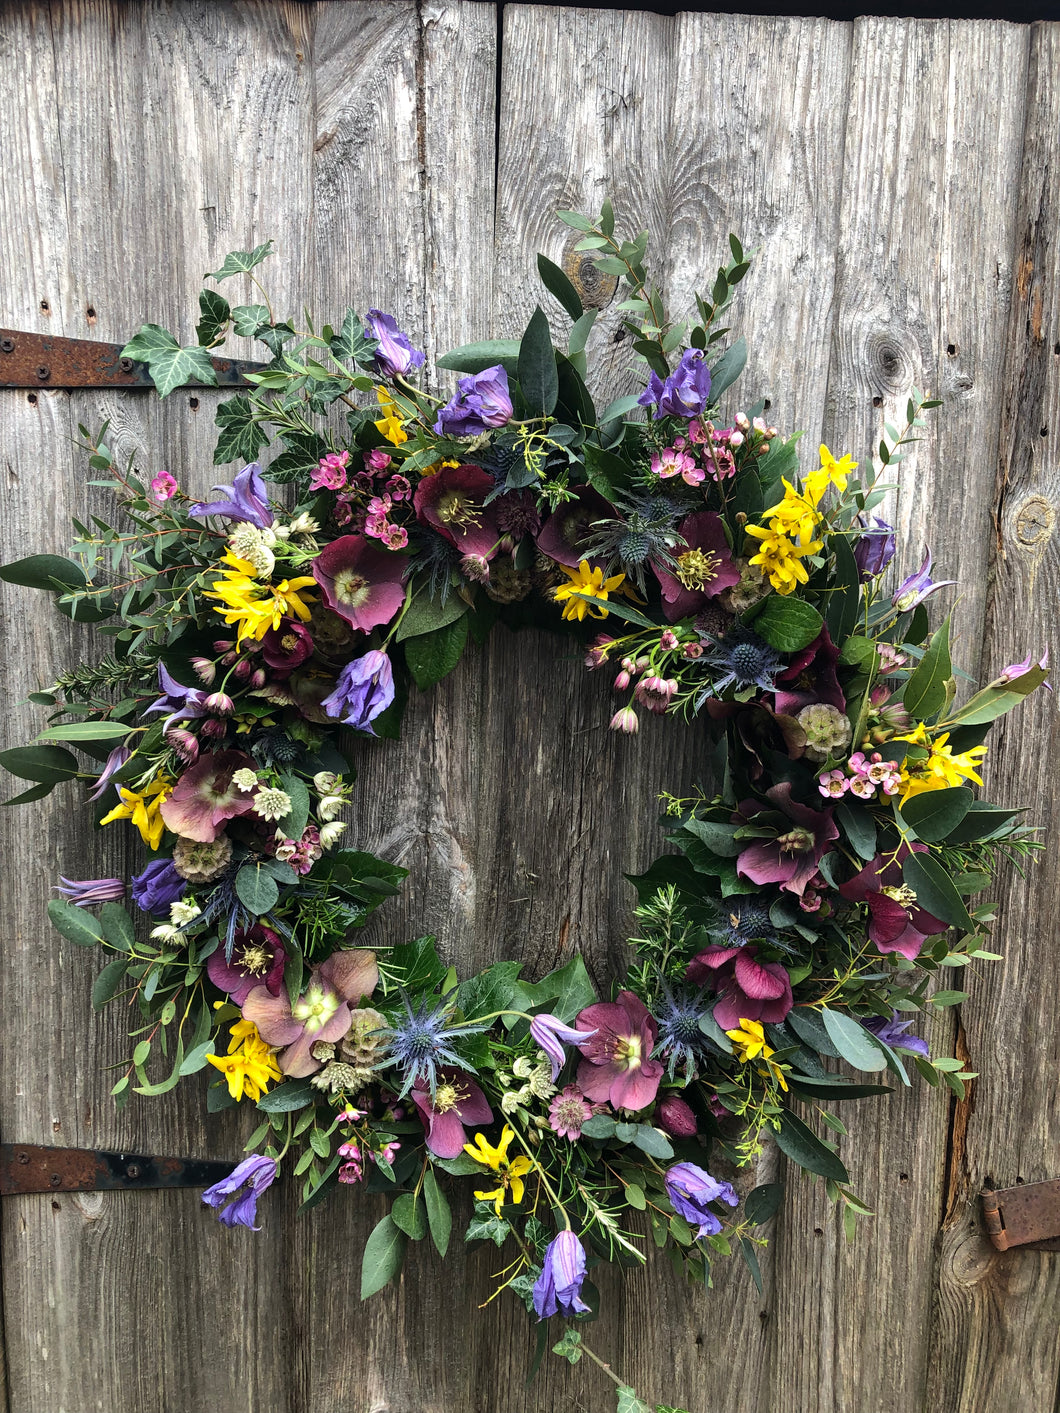 LARGE BIODEGRADABLE  BESPOKE FUNERAL WREATH